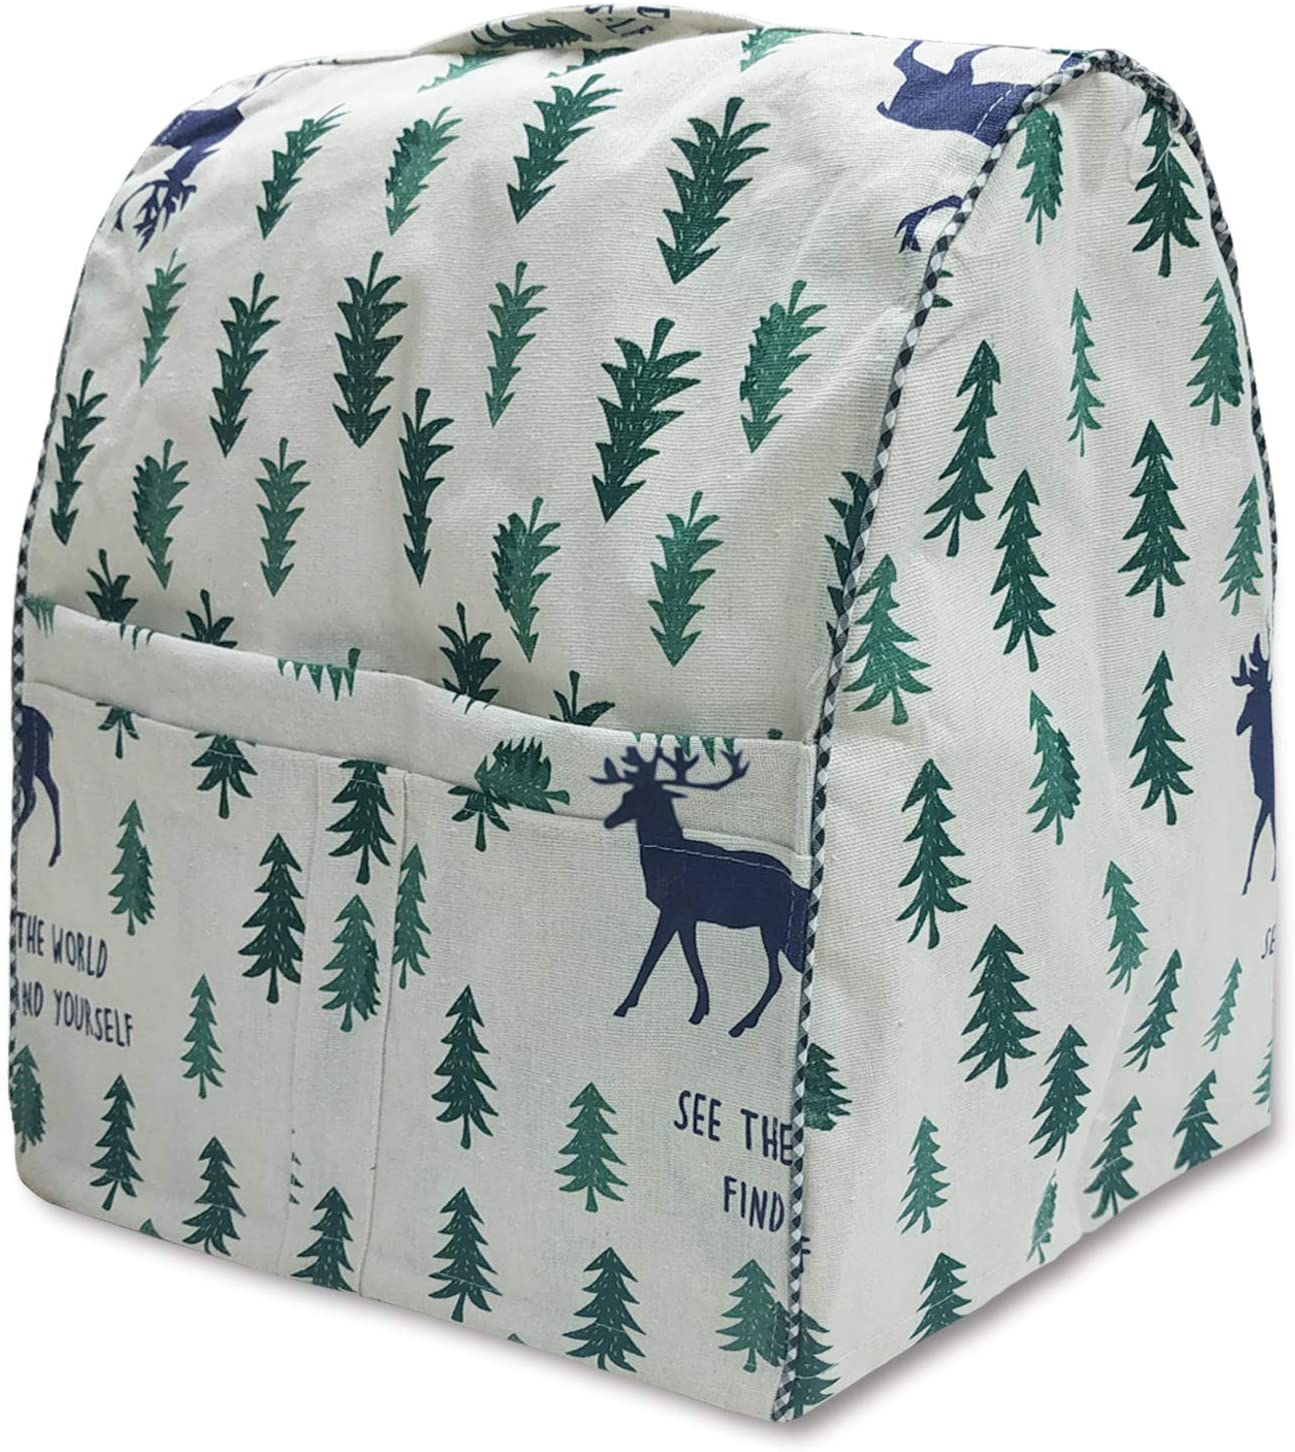 STARTWO Stand Mixer Dust Cover with Pocket, Compatible with Kitchen Aid Mixer, Fits 6-8 Quart All Tilt Head & Bowl Lift Models (W14xD11xH17in)-Deer Forest